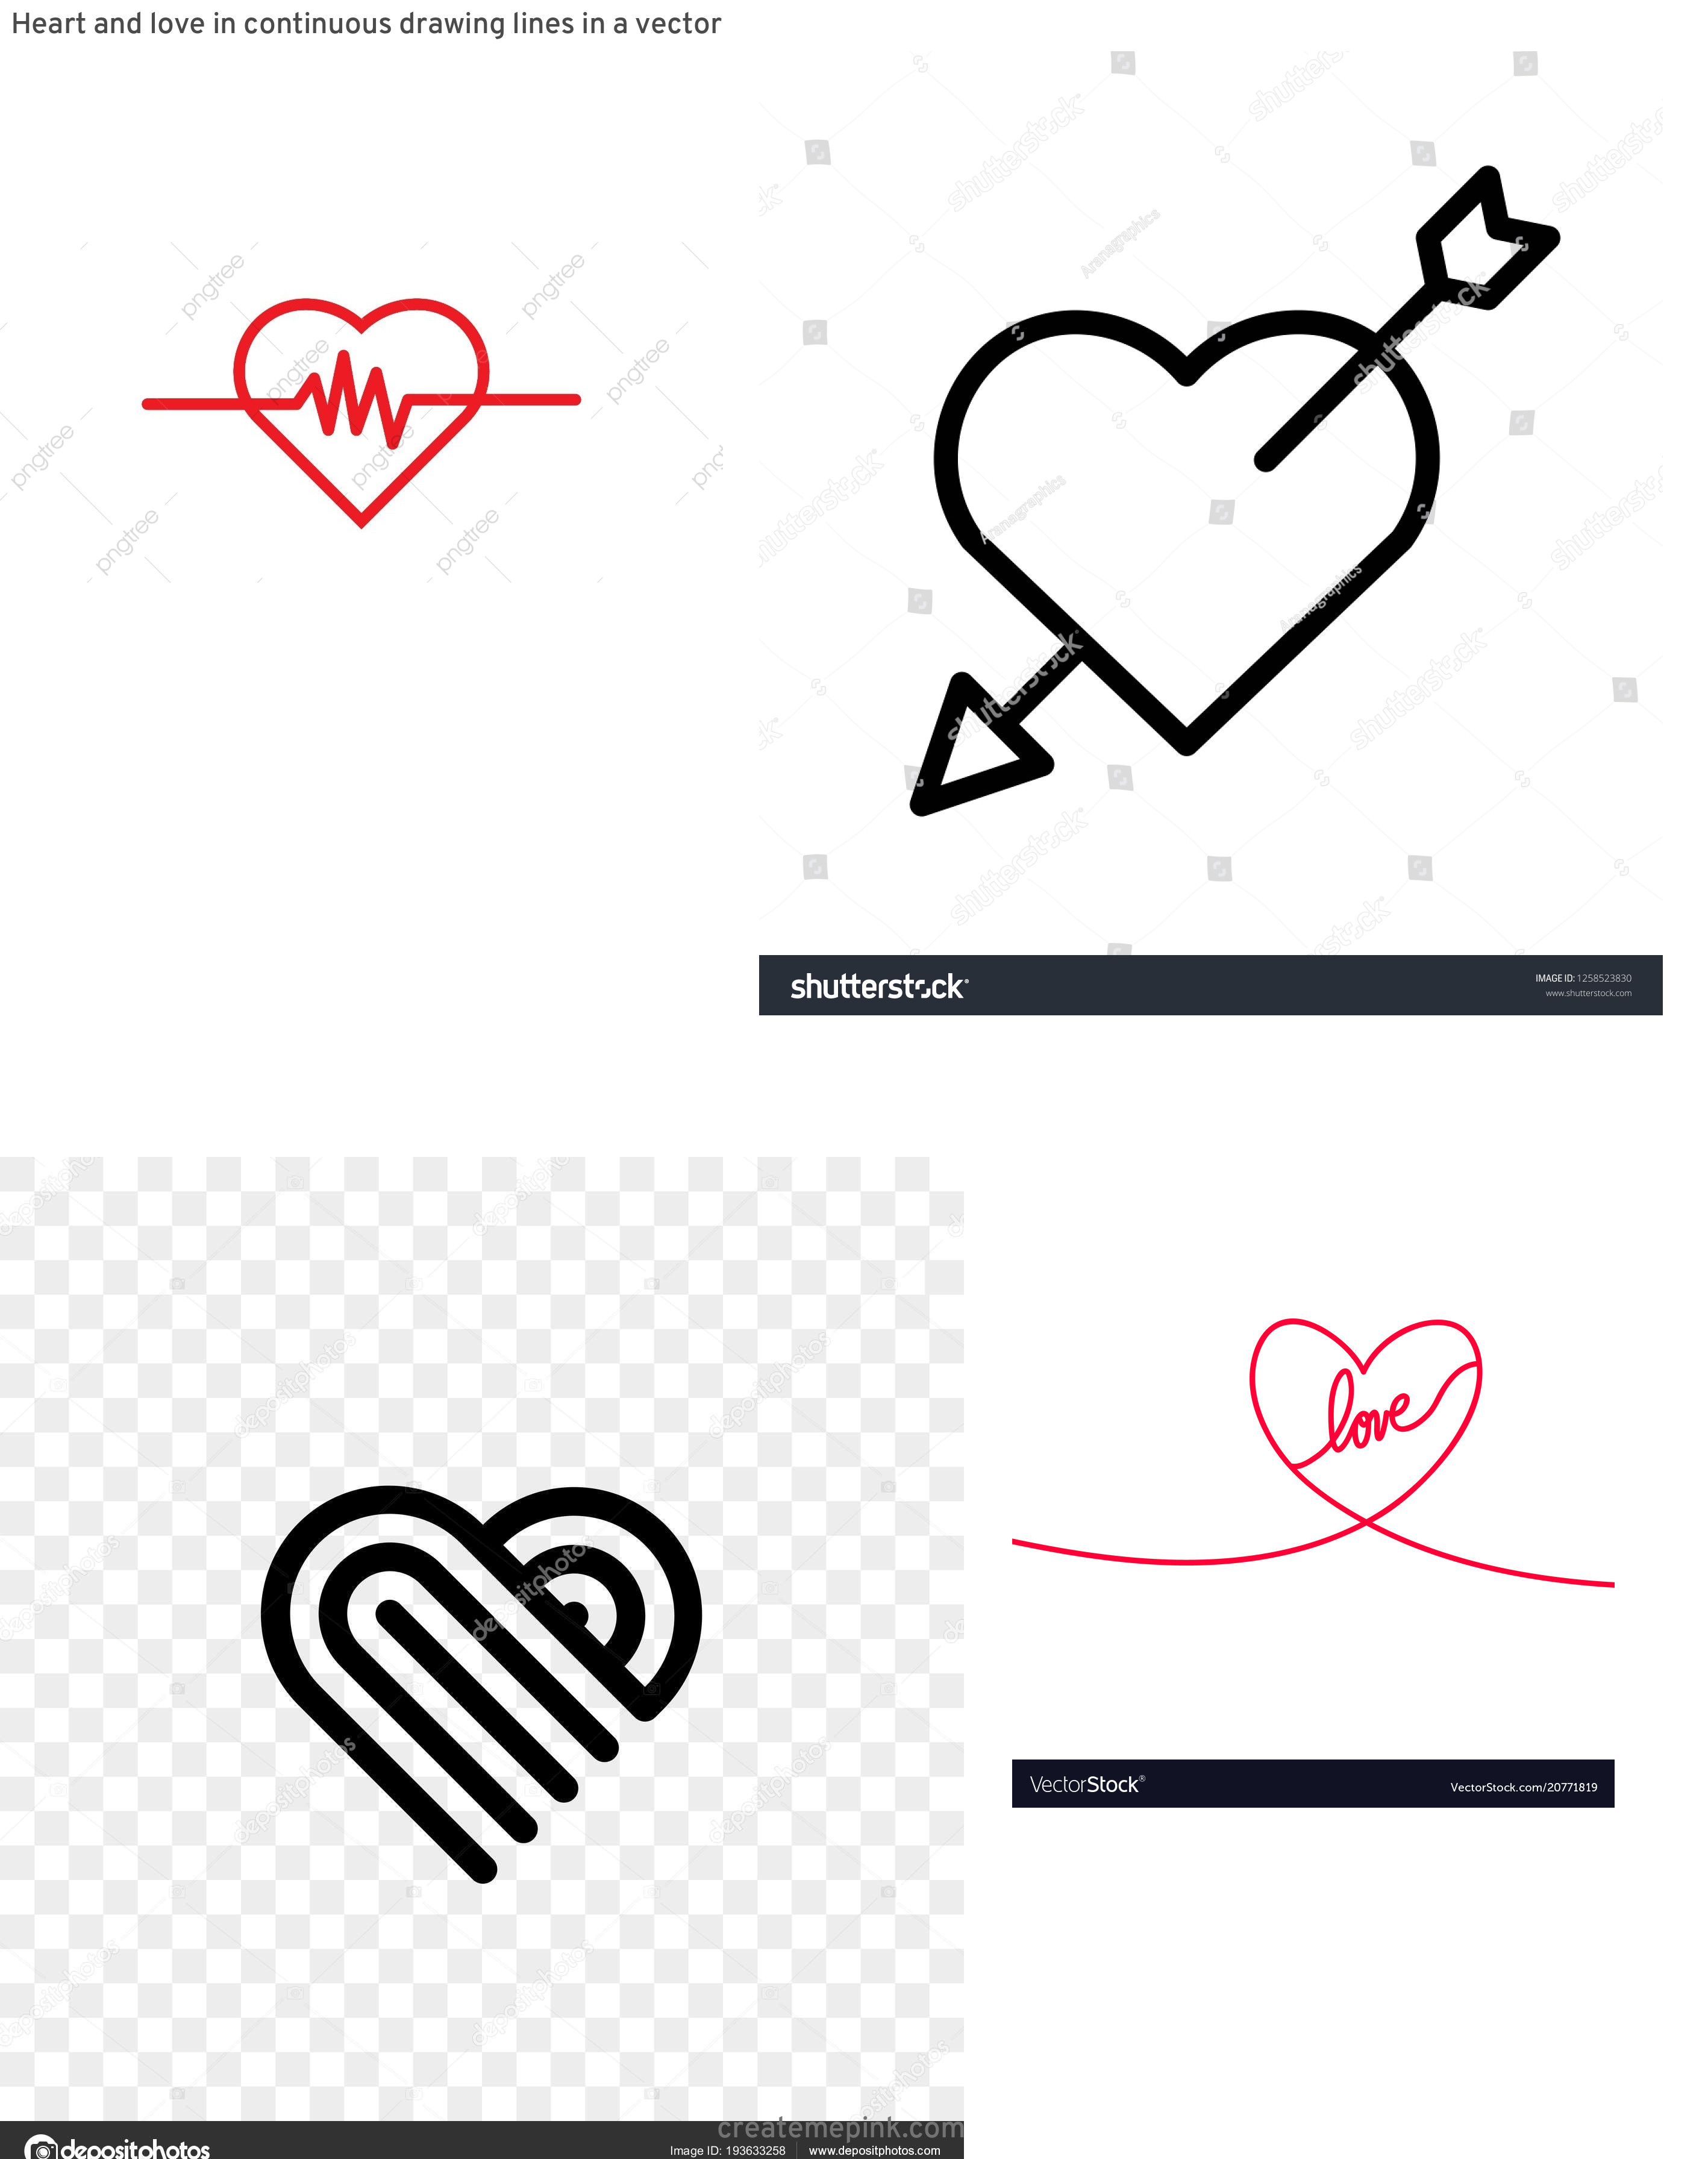 Heart Vector Line Designs: Heart And Love In Continuous Drawing Lines In A Vector